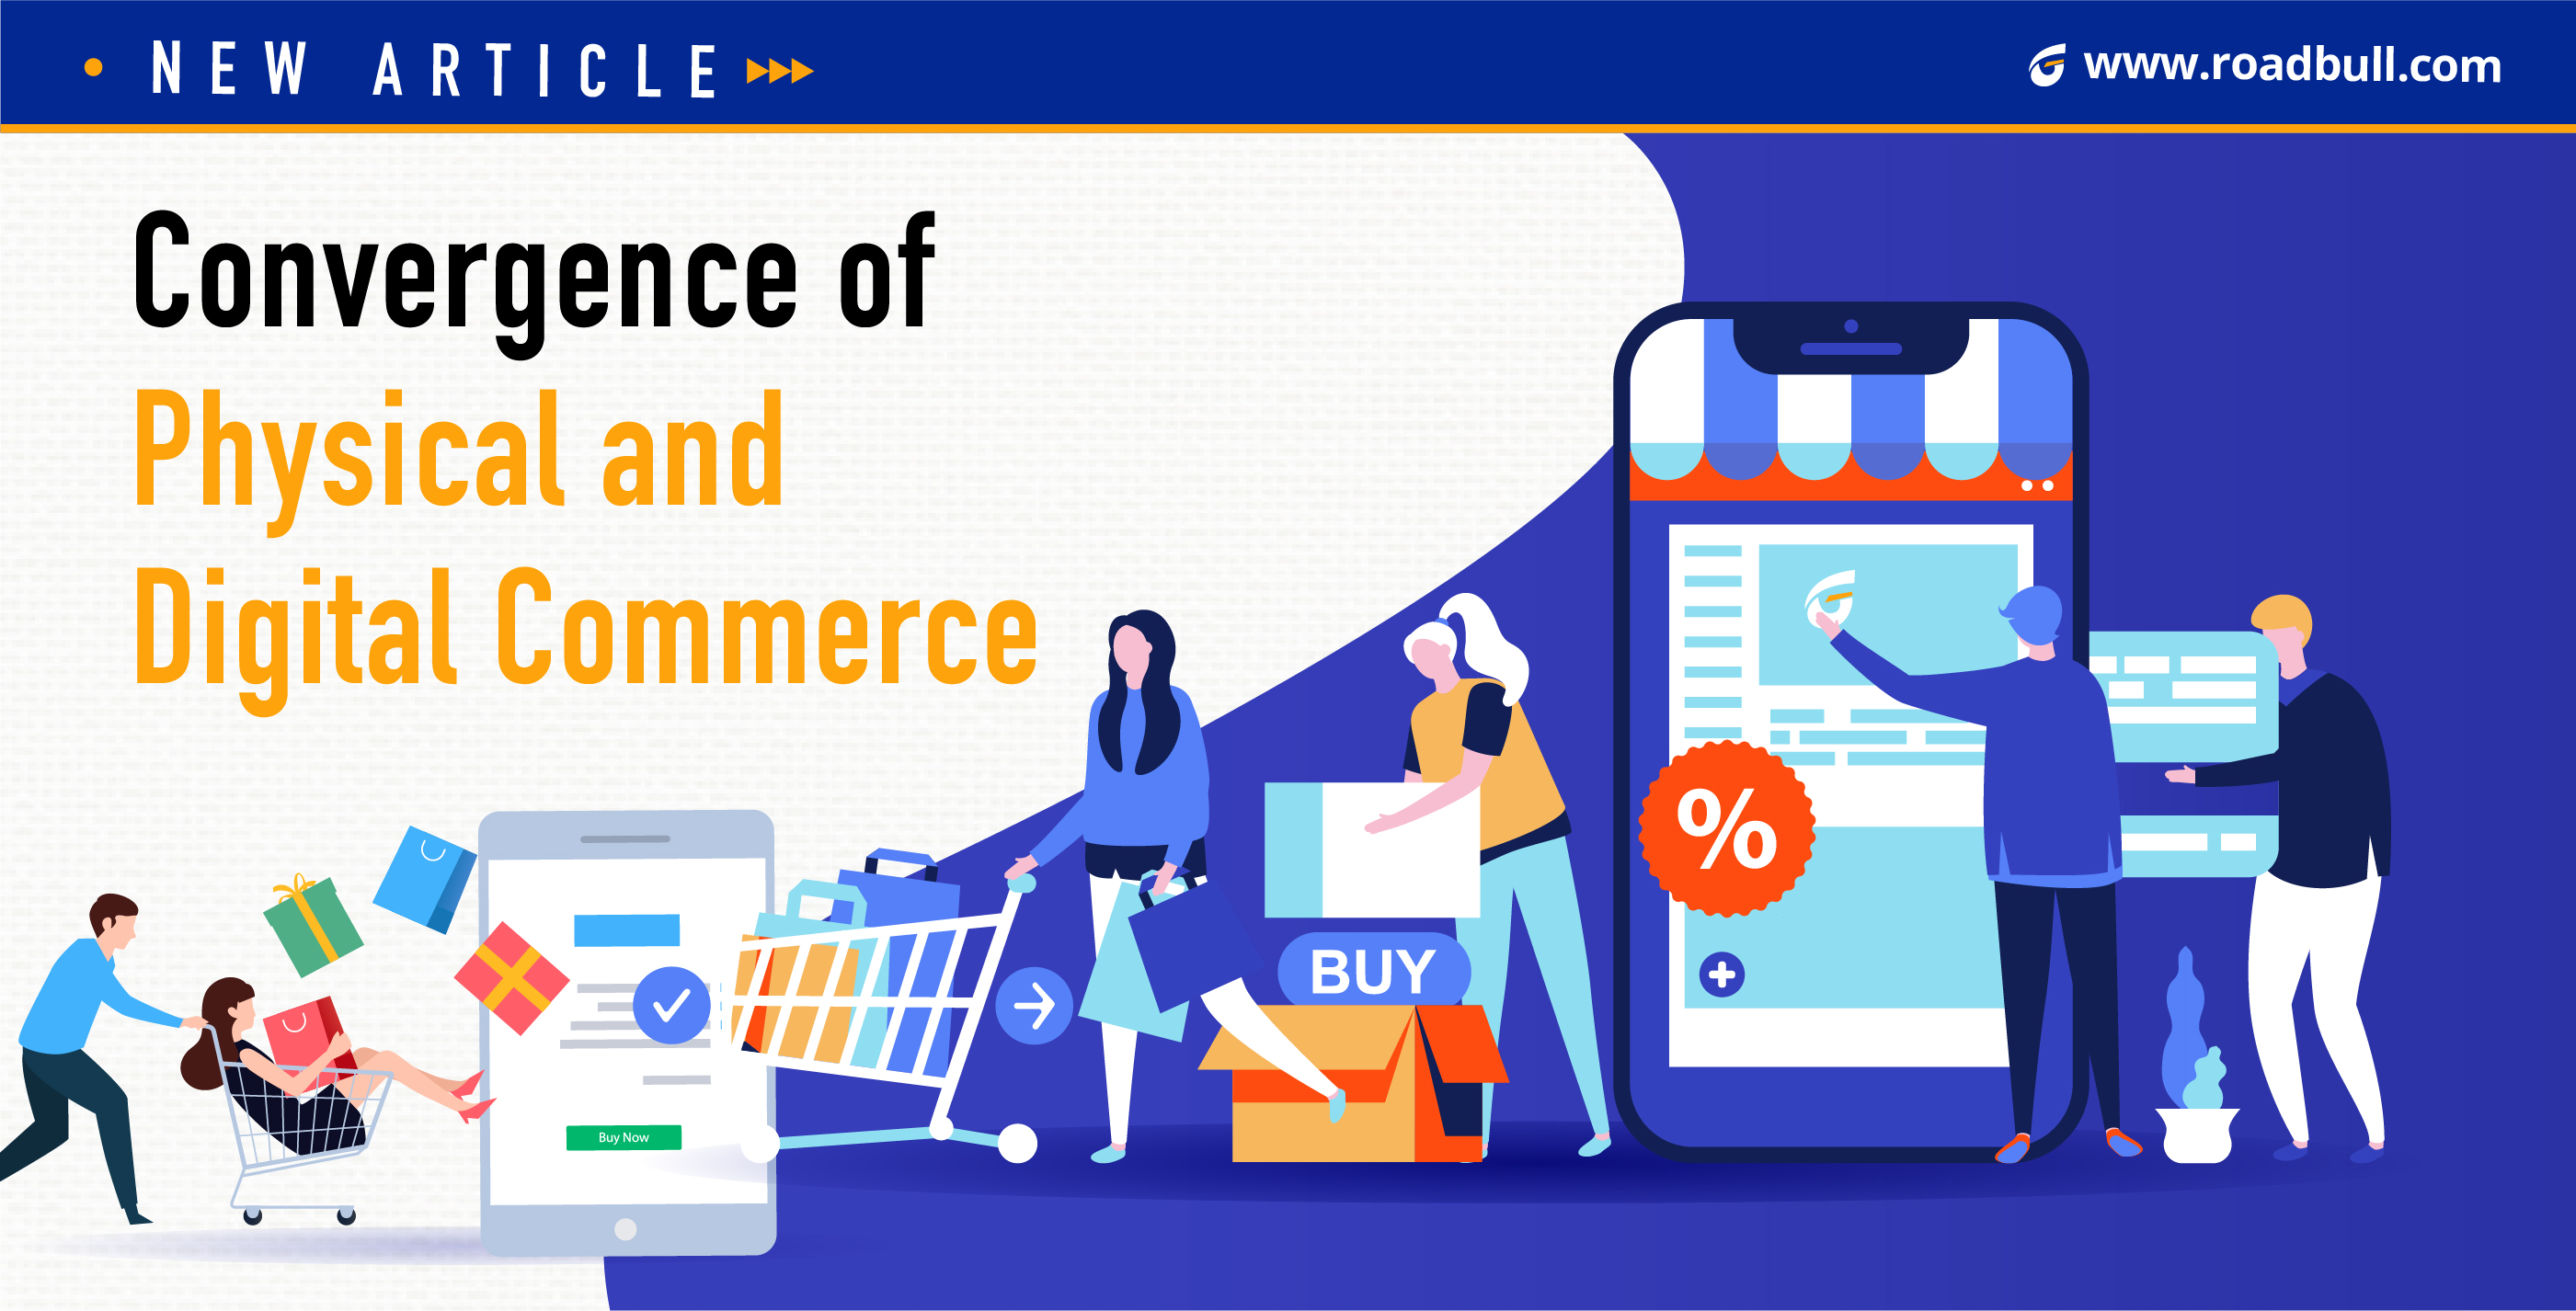 Convergence of Physical and Digital Commerce